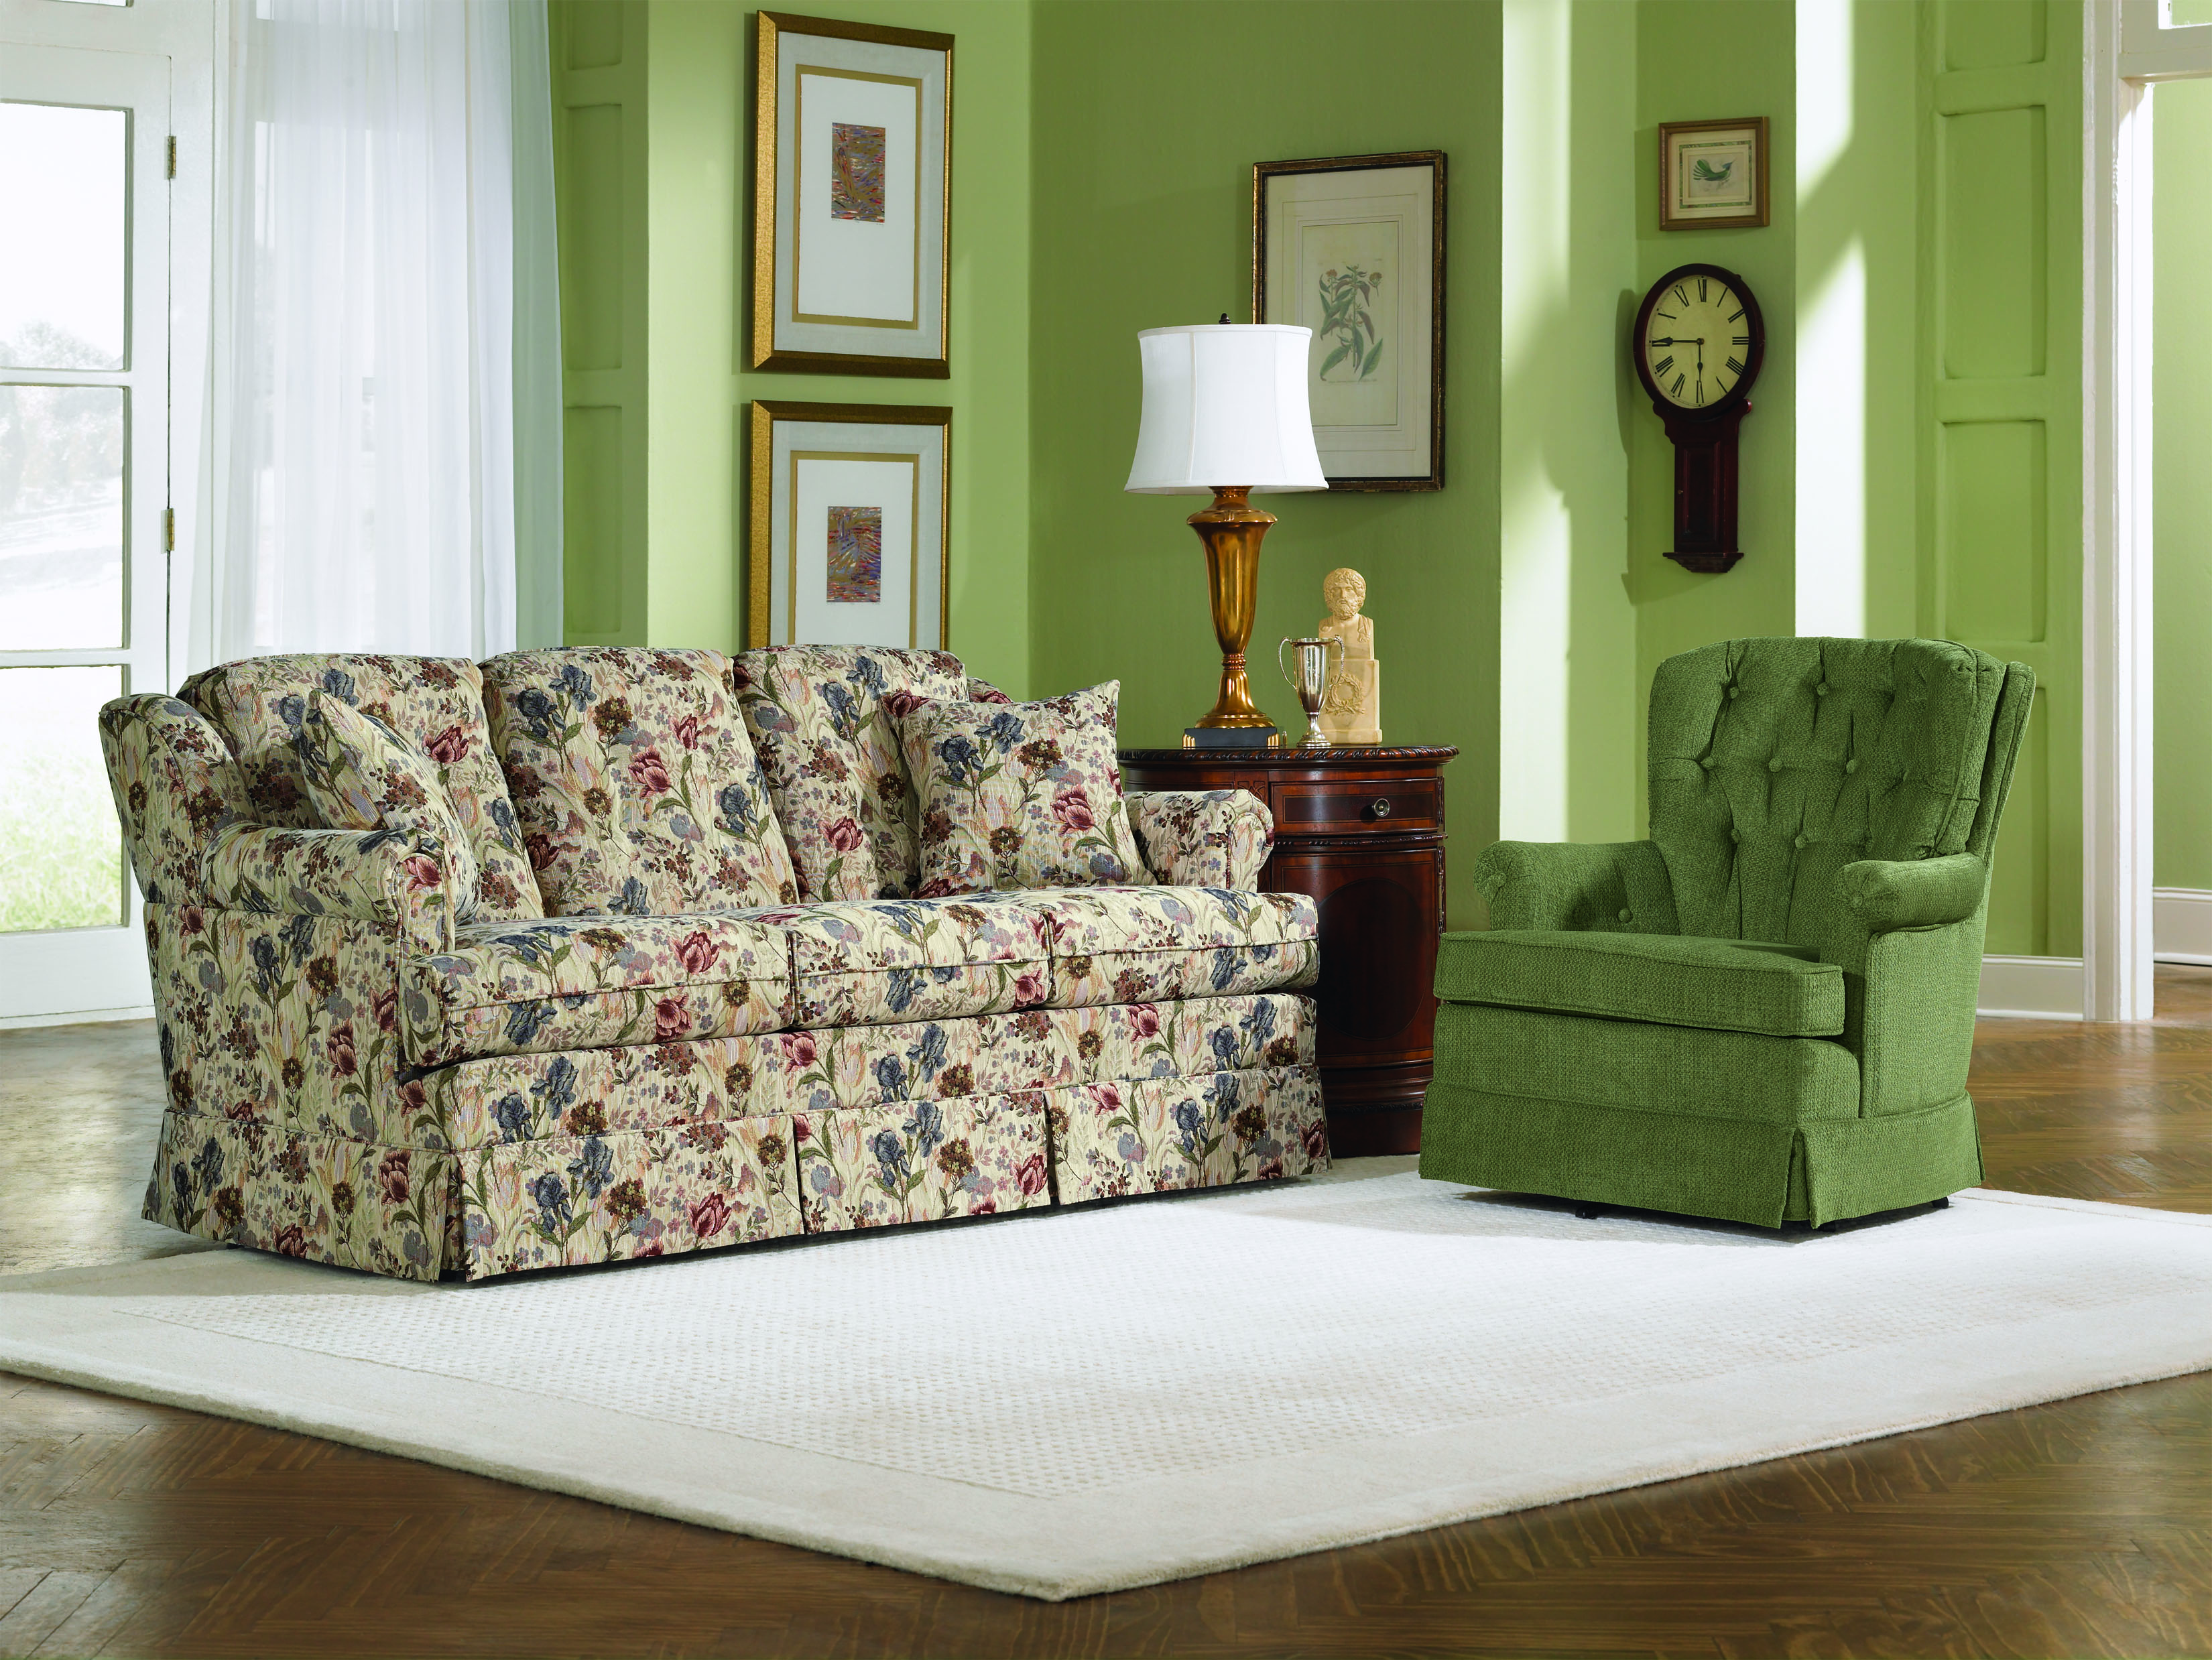 Charles Schneider Furniture Out Of Business Furniture Ideas